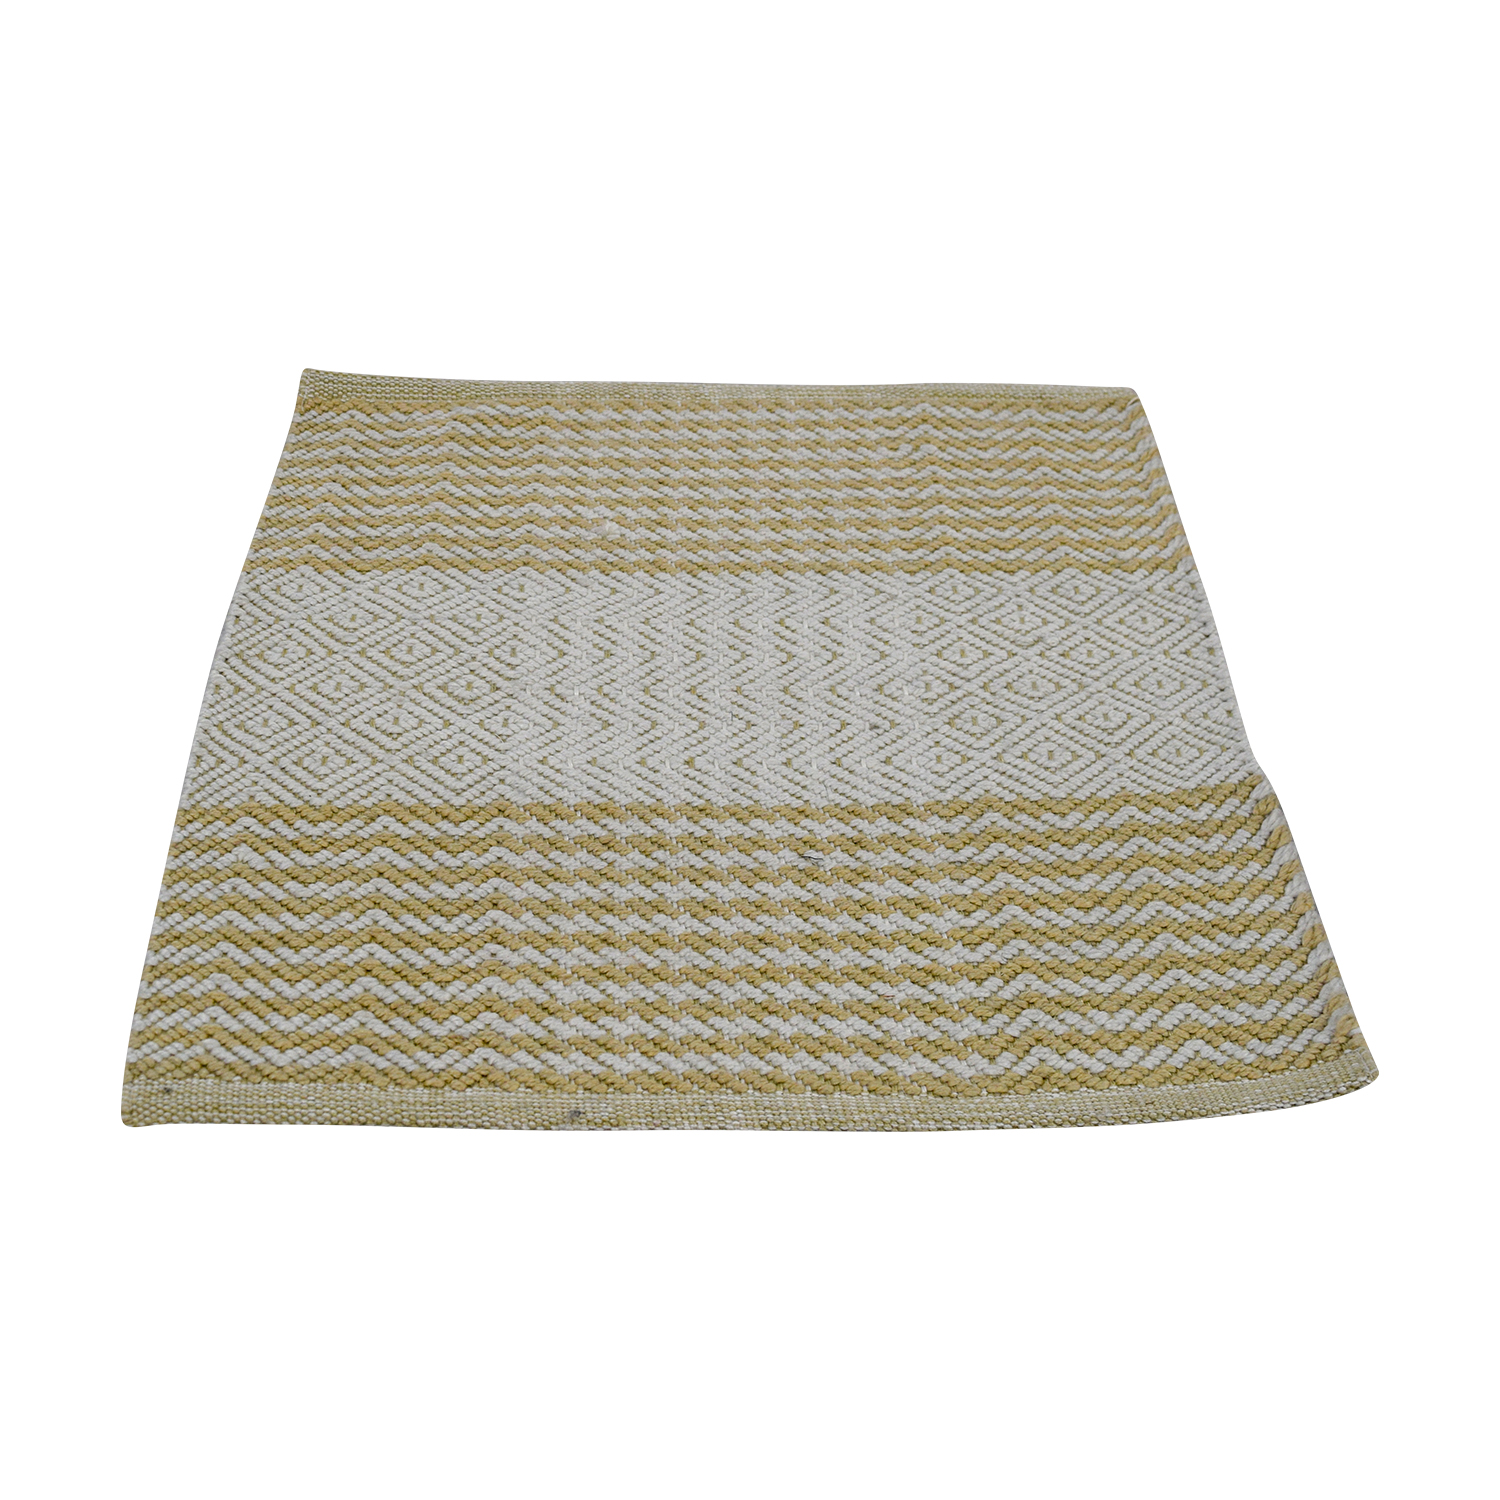 buy Obeetee 2x2 Cream and Beige Rug Obeetee Rugs